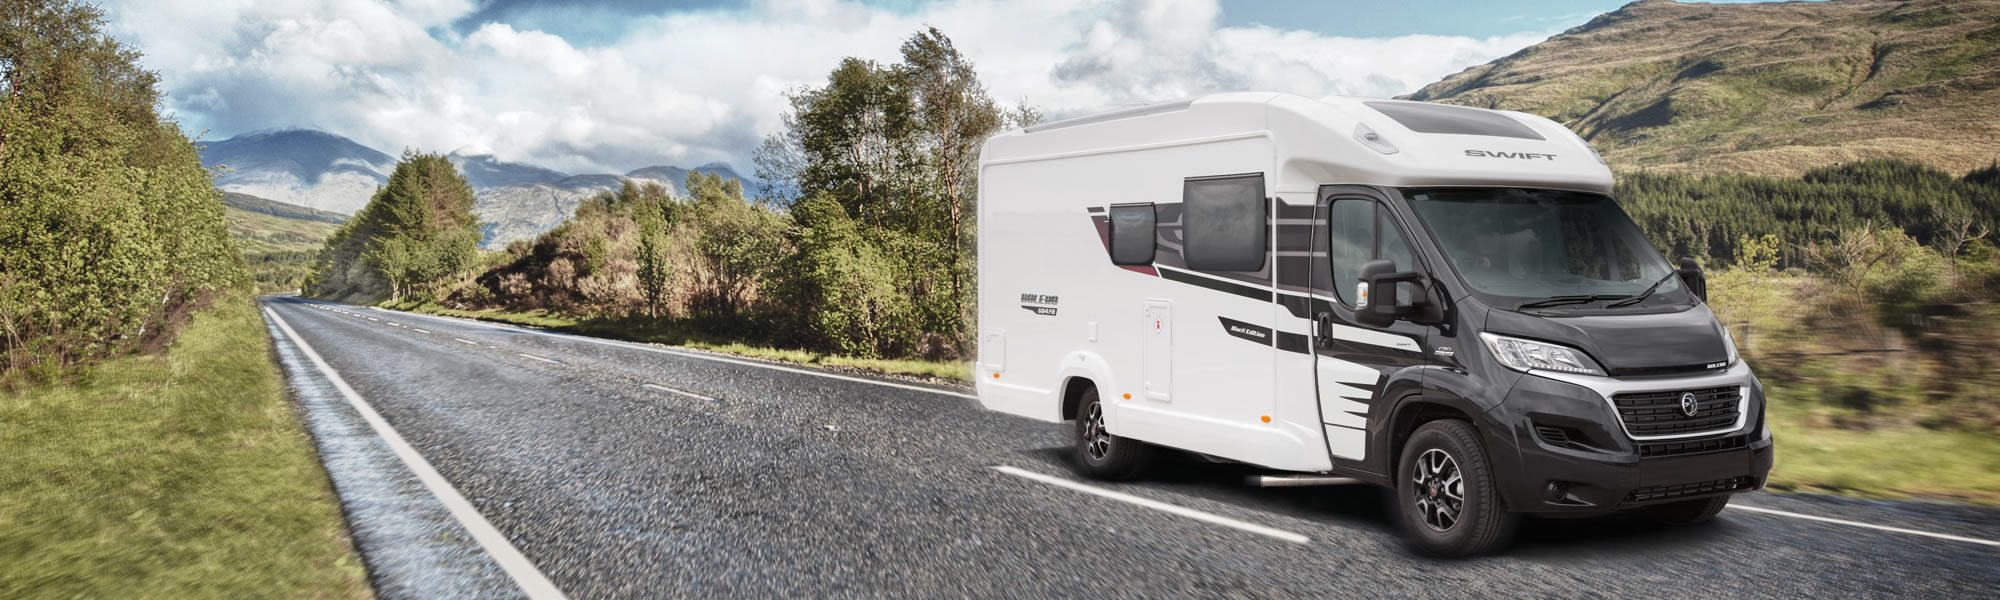 Hire Motorhomes for Touring the UK